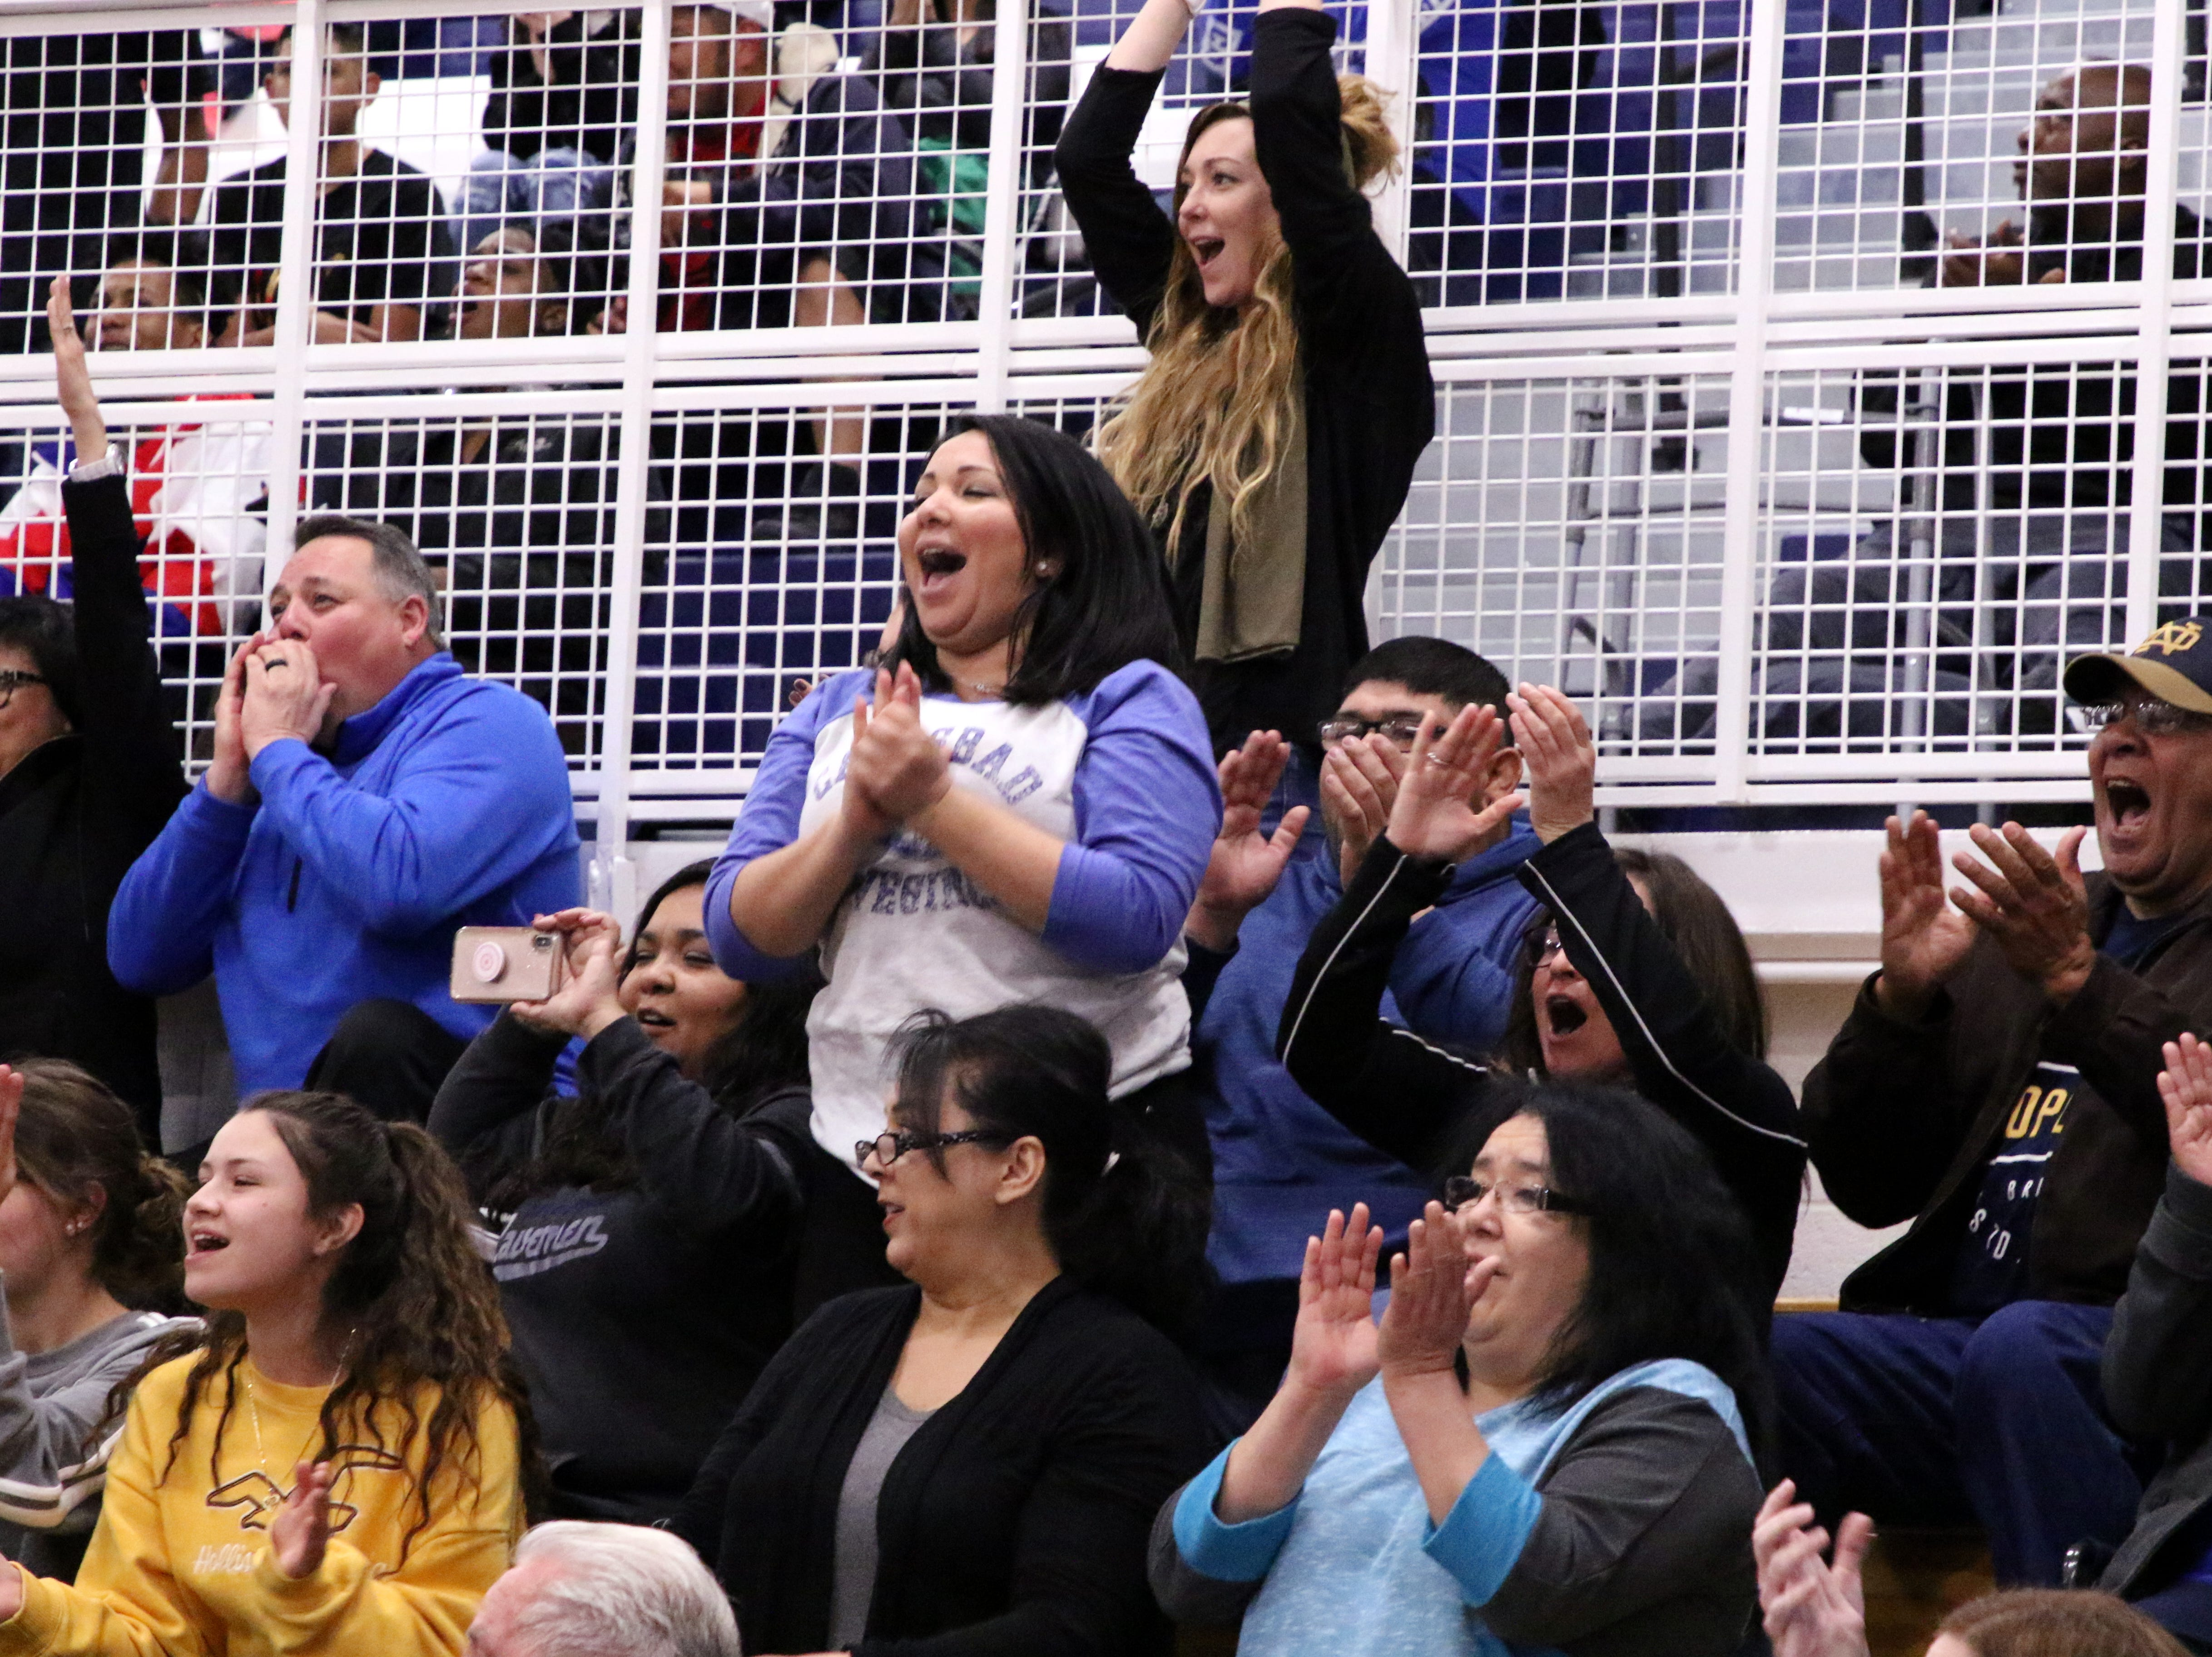 A few rowdy fans cheer after the Cavegirls made a 3-point shot in the first half of Friday's game.